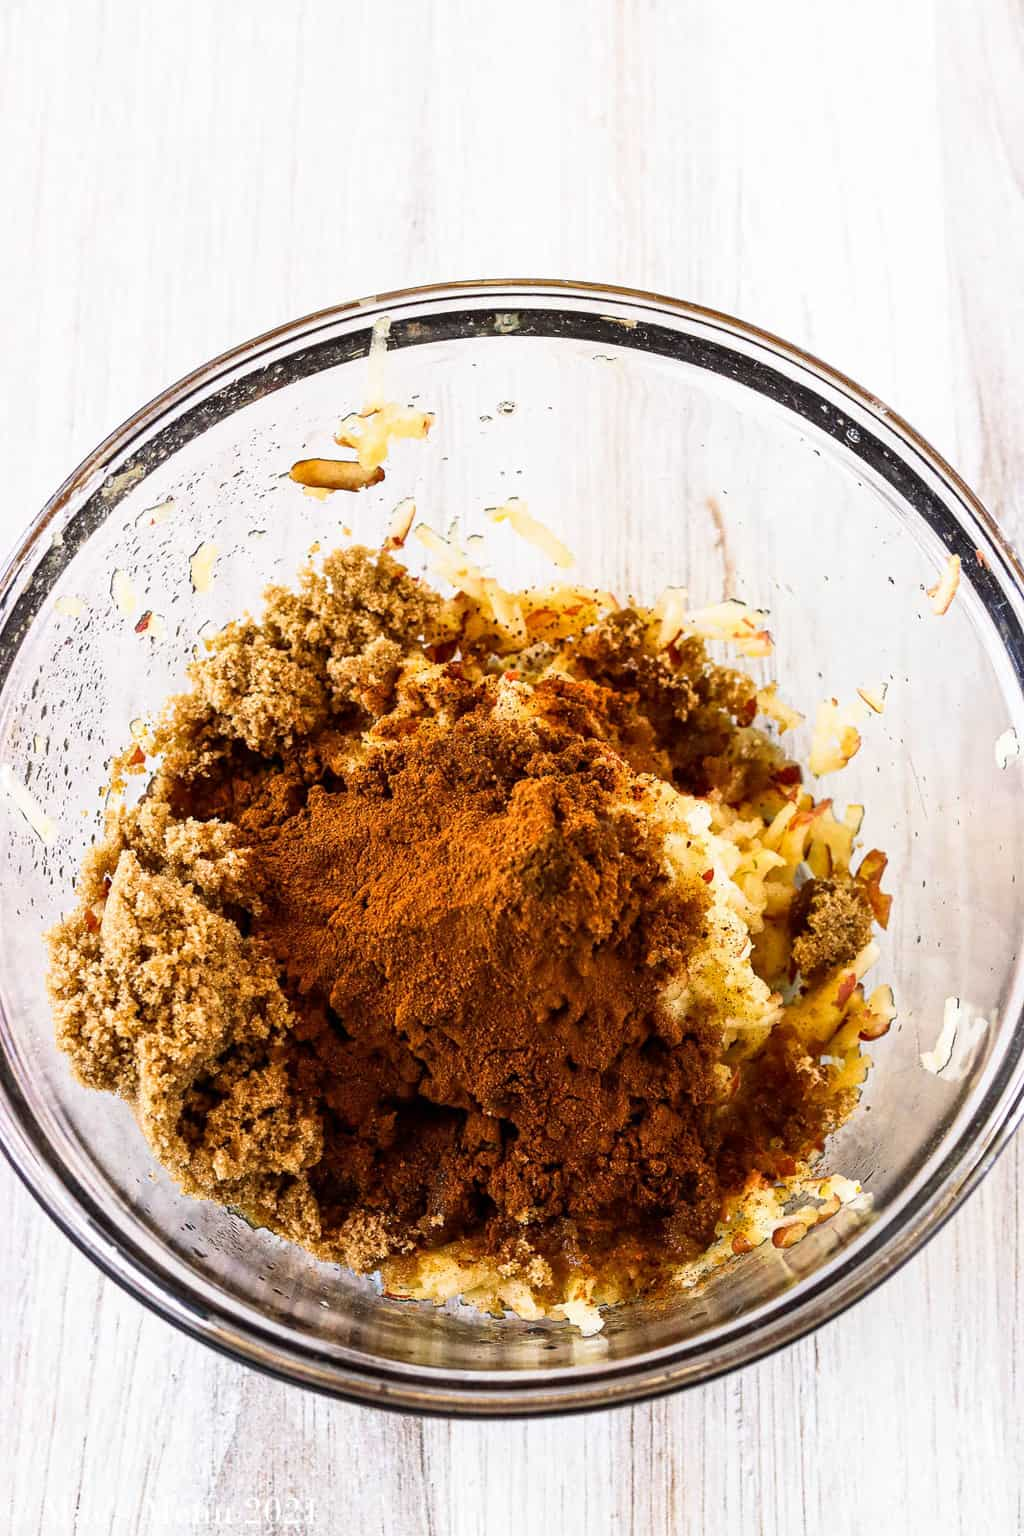 A mixing bowl with shredded apples, cinnamon, nutmeg, and cloves